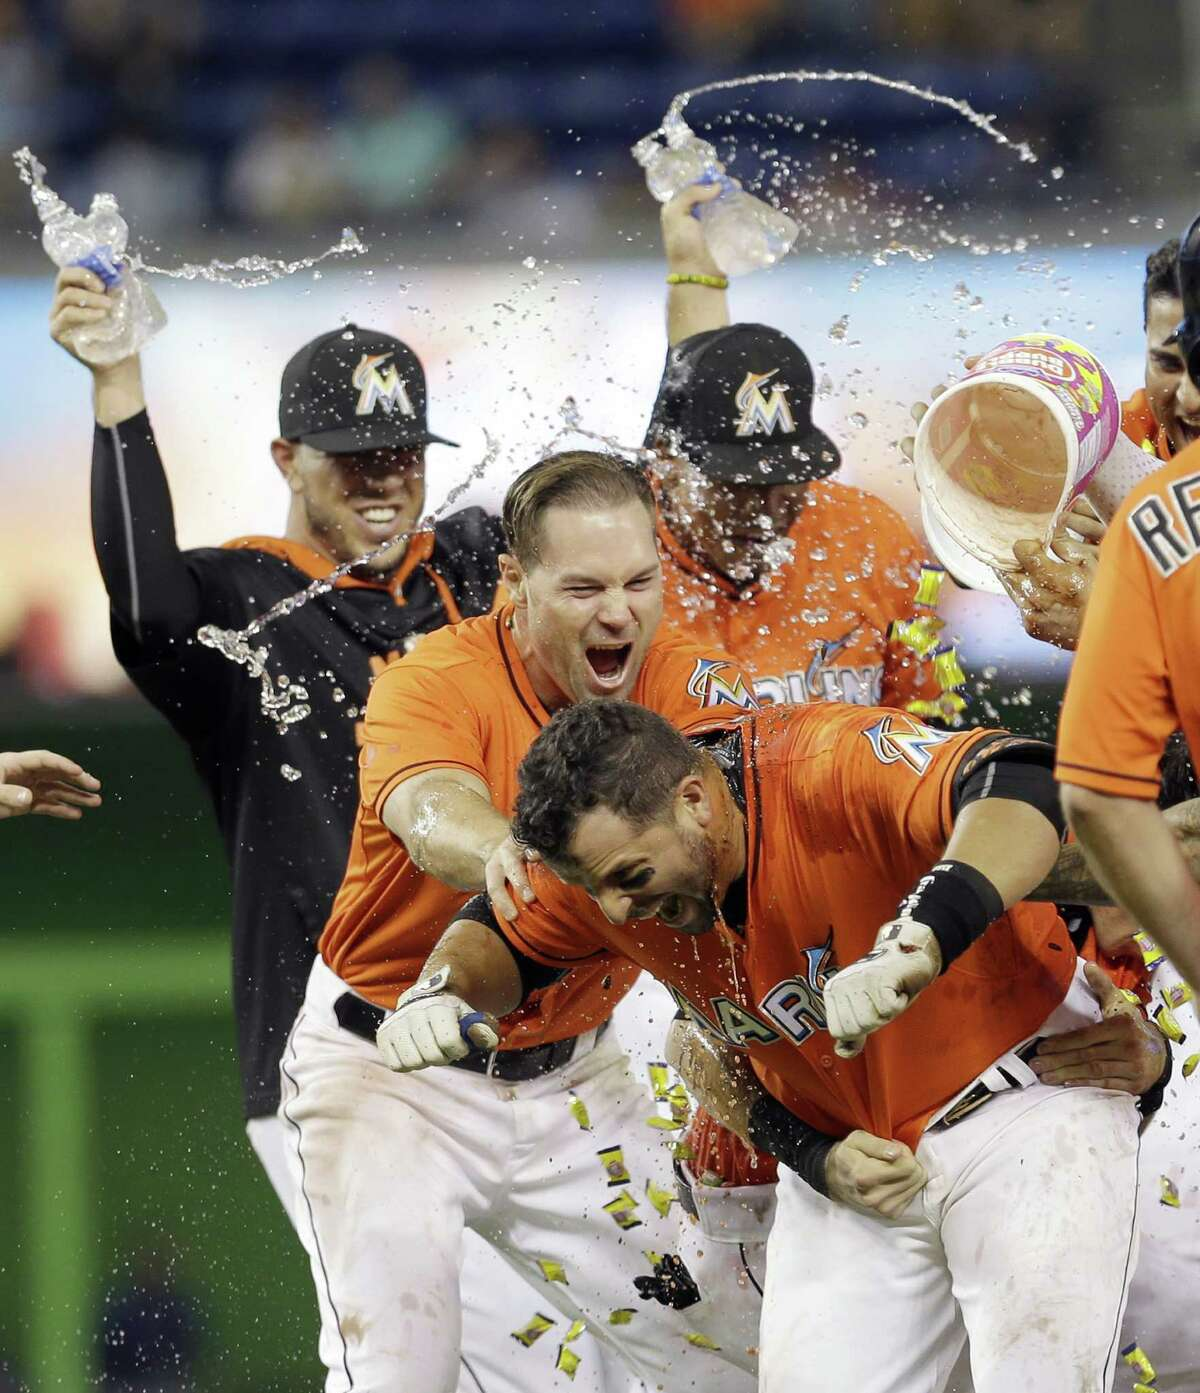 Miami Marlins' Martin Prado, foreground, is doused by teammates after hitting a baseball game-winning sacrifice fly with the bases loaded against the New York Mets in the ninth inning Sunday, Sept. 6, 2015, in Miami. Marlins' J.T. Realmuto scored the game-winning run in the 4-3 victory. (AP Photo/Alan Diaz) ORG XMIT: FLAD112